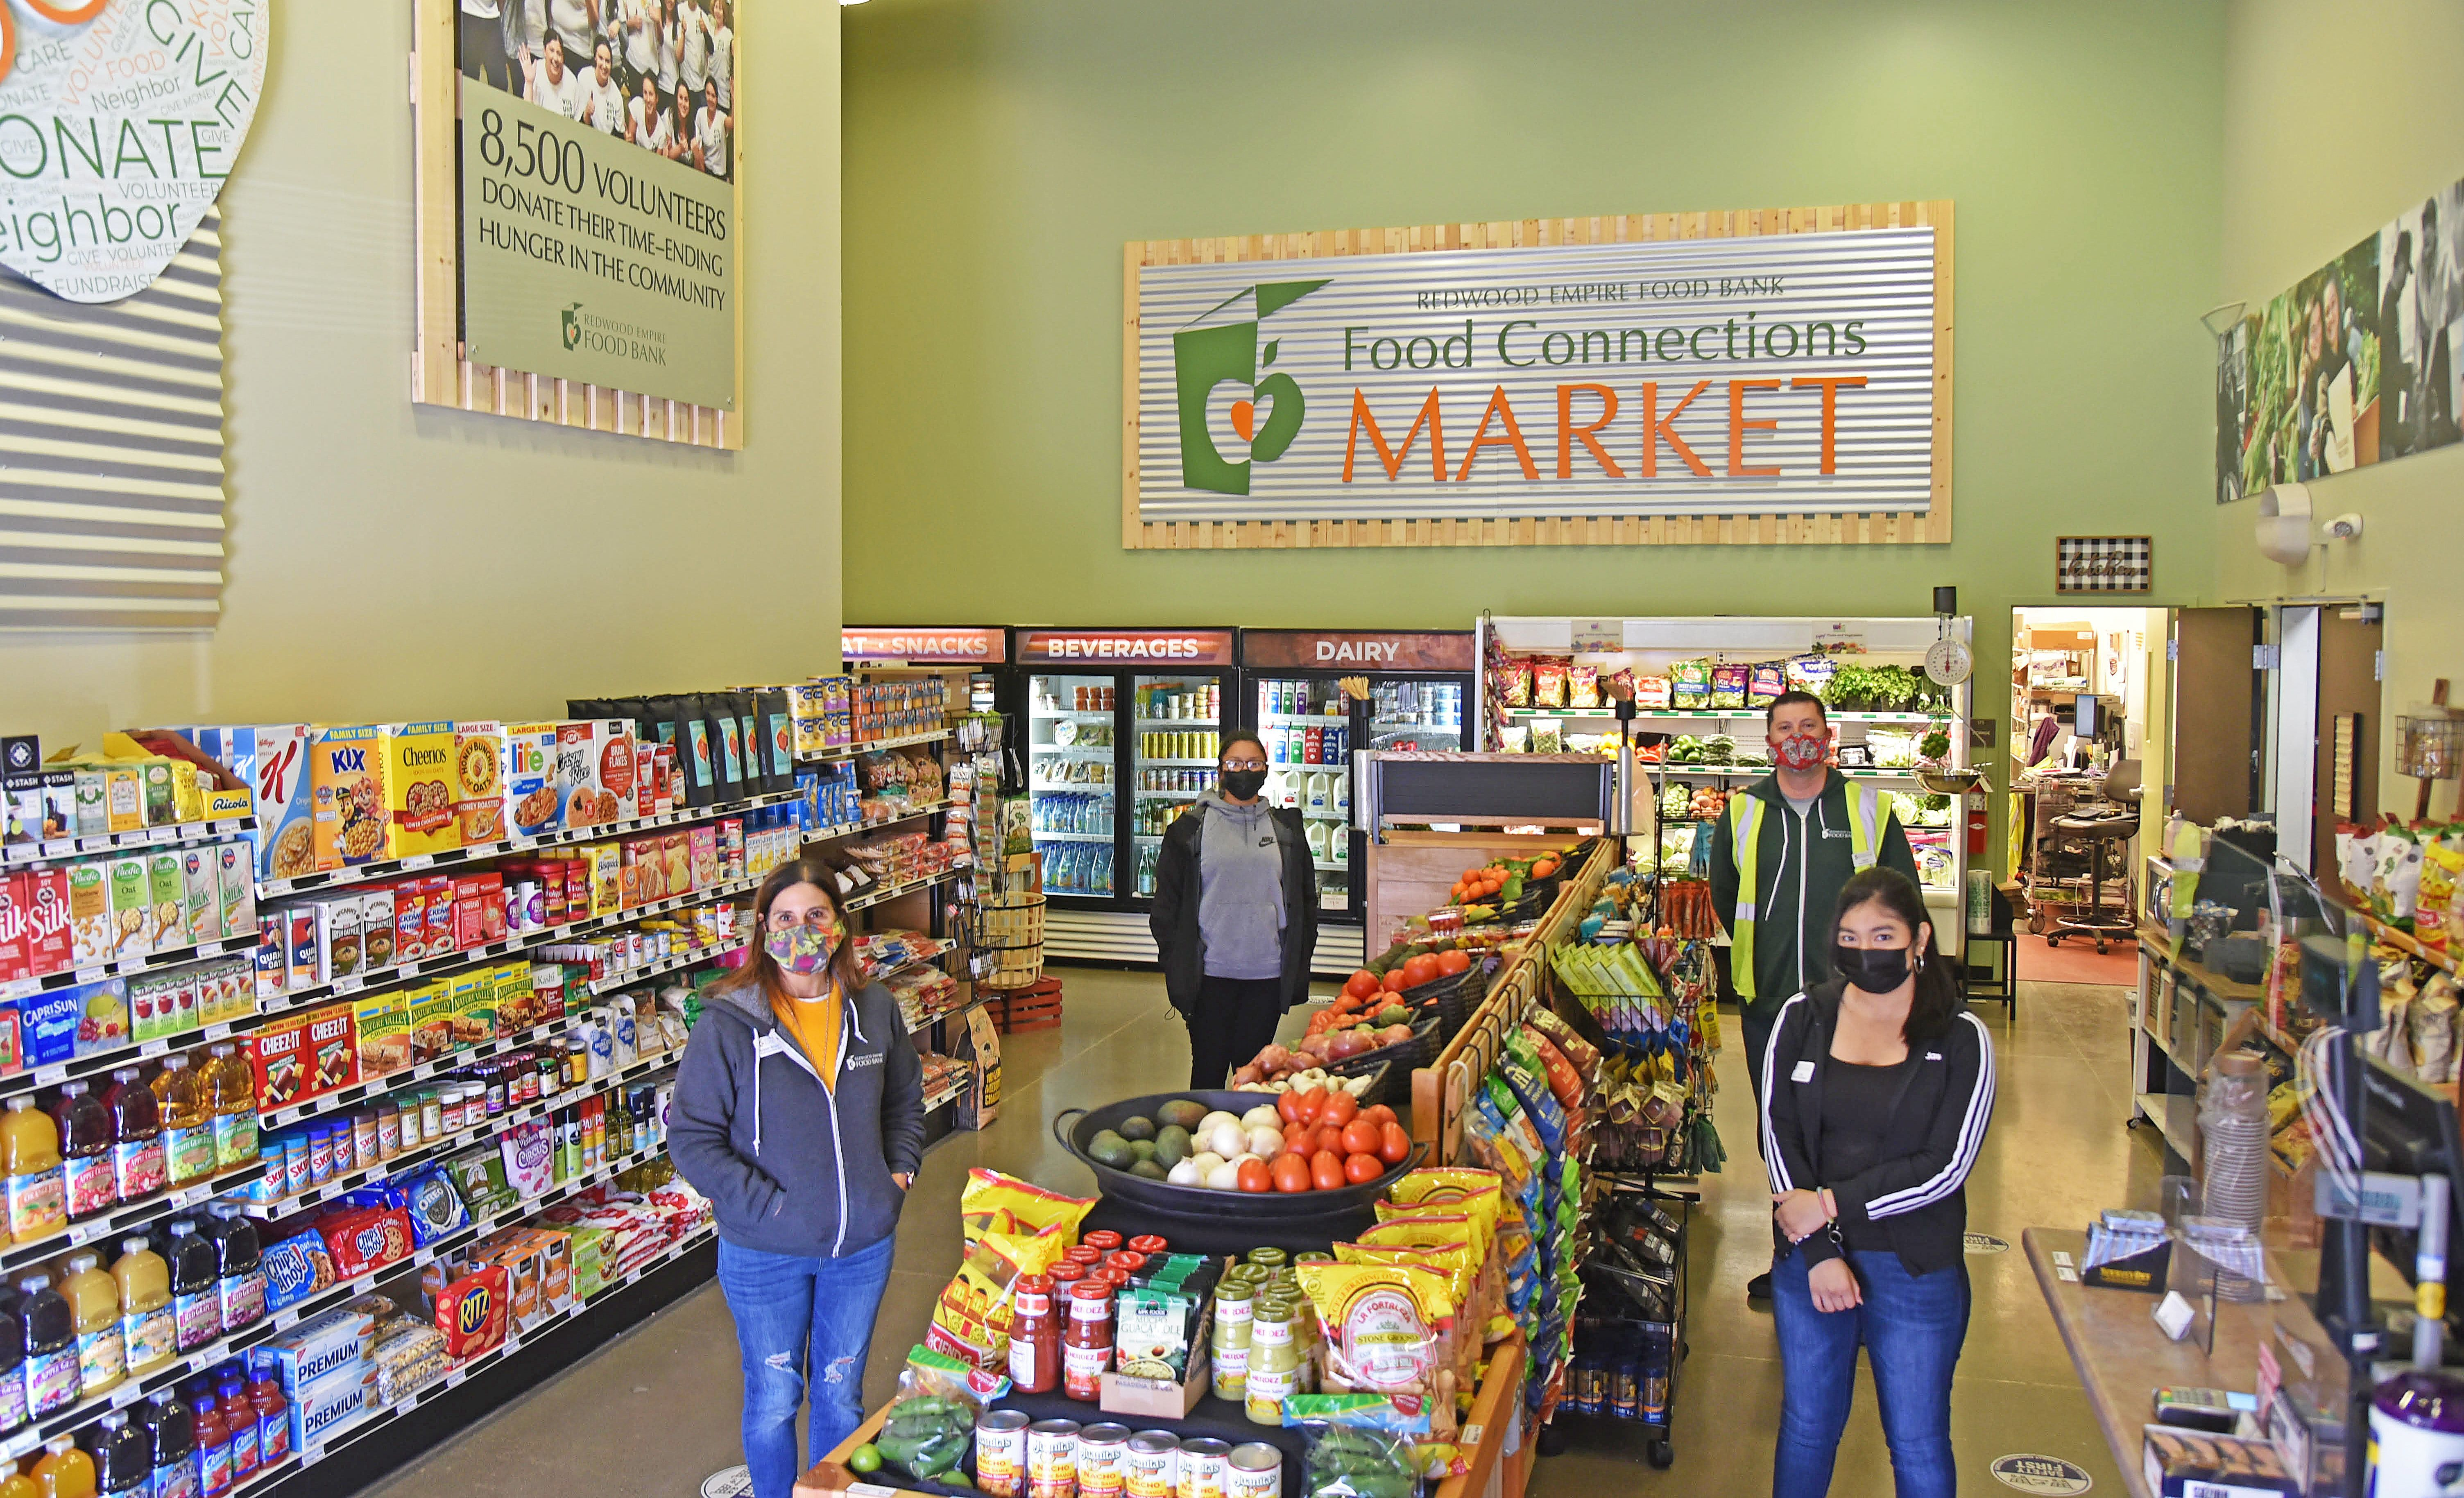 Food Connections Market: